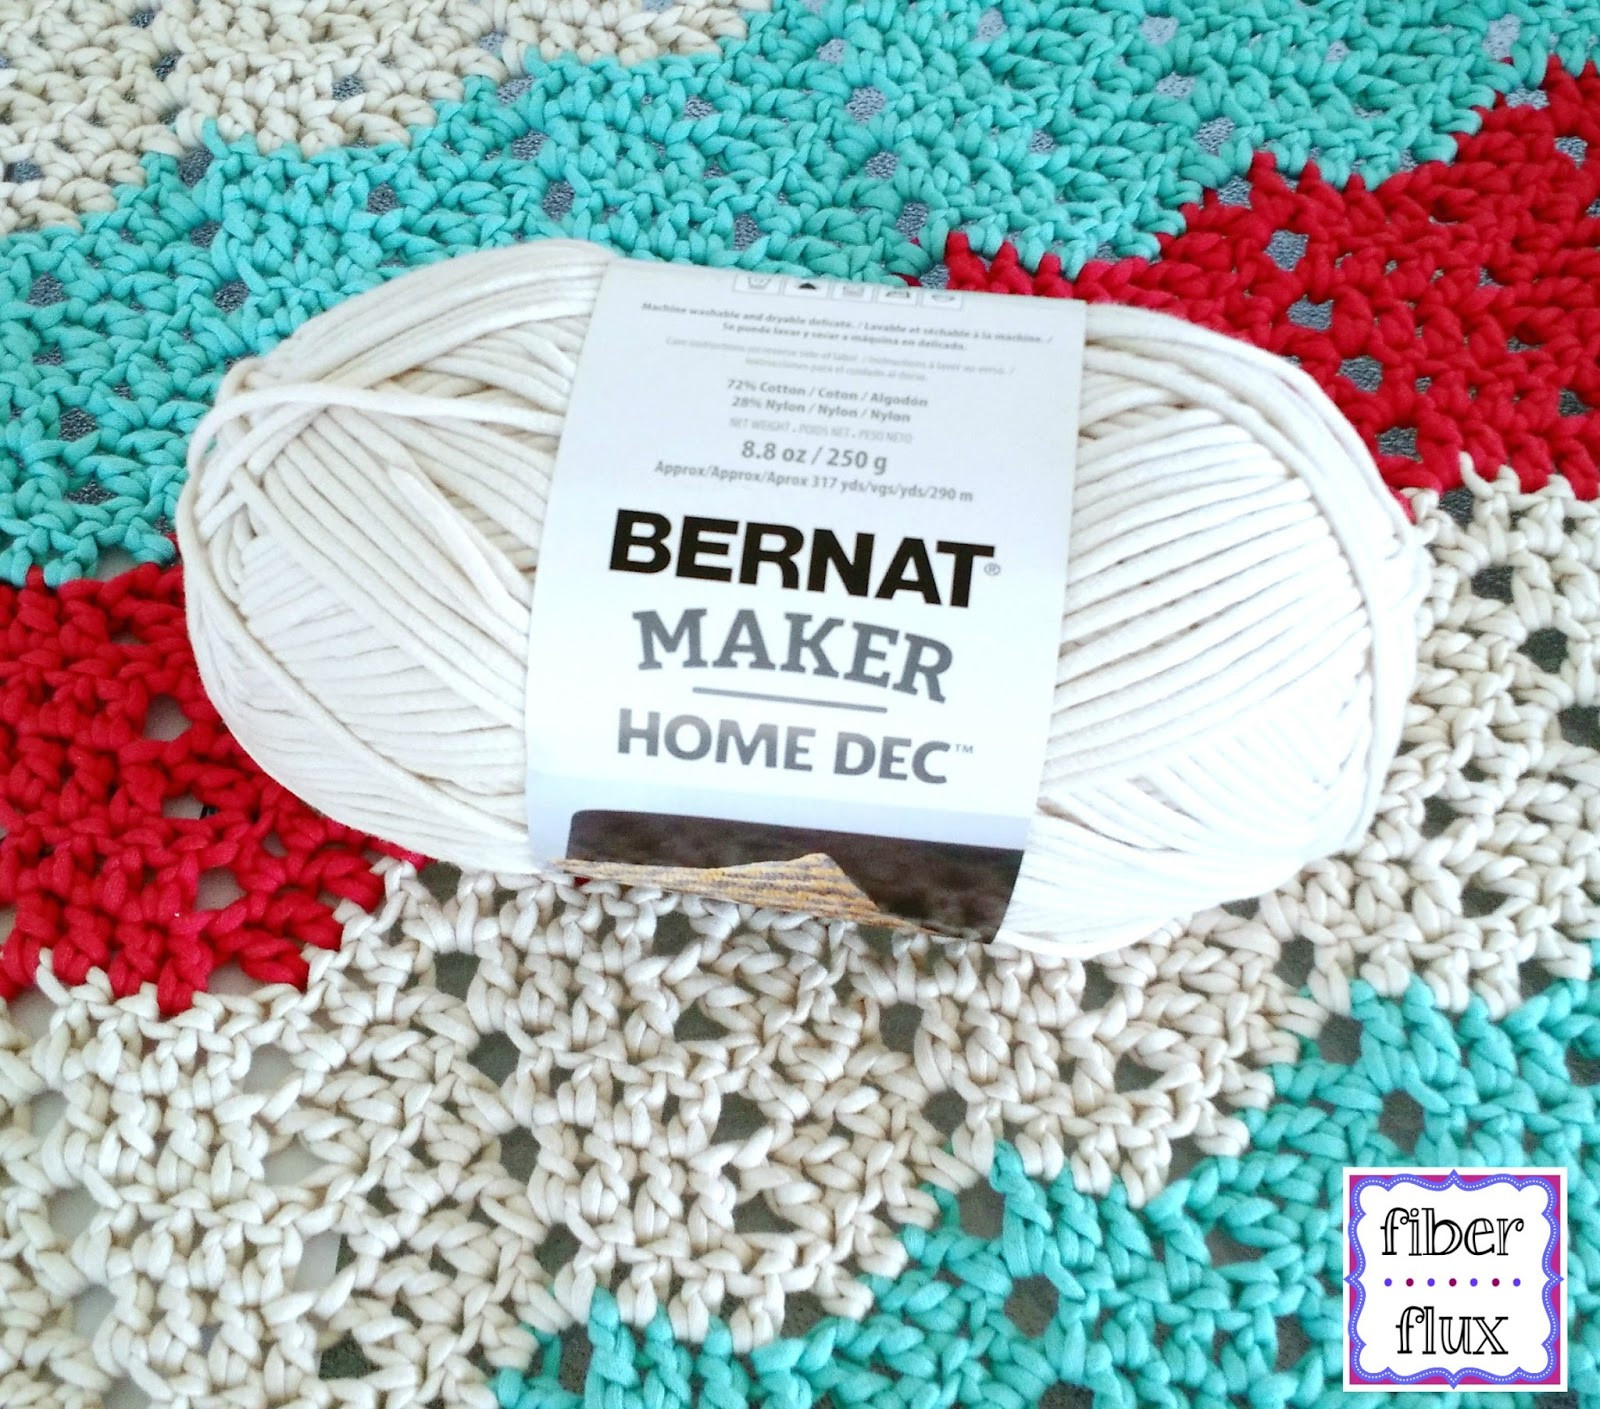 Bernat Maker Home Dec Yarn Lovely Fiber Flux Yarn 101 Bernat Maker Home Dec Of Charming 45 Ideas Bernat Maker Home Dec Yarn